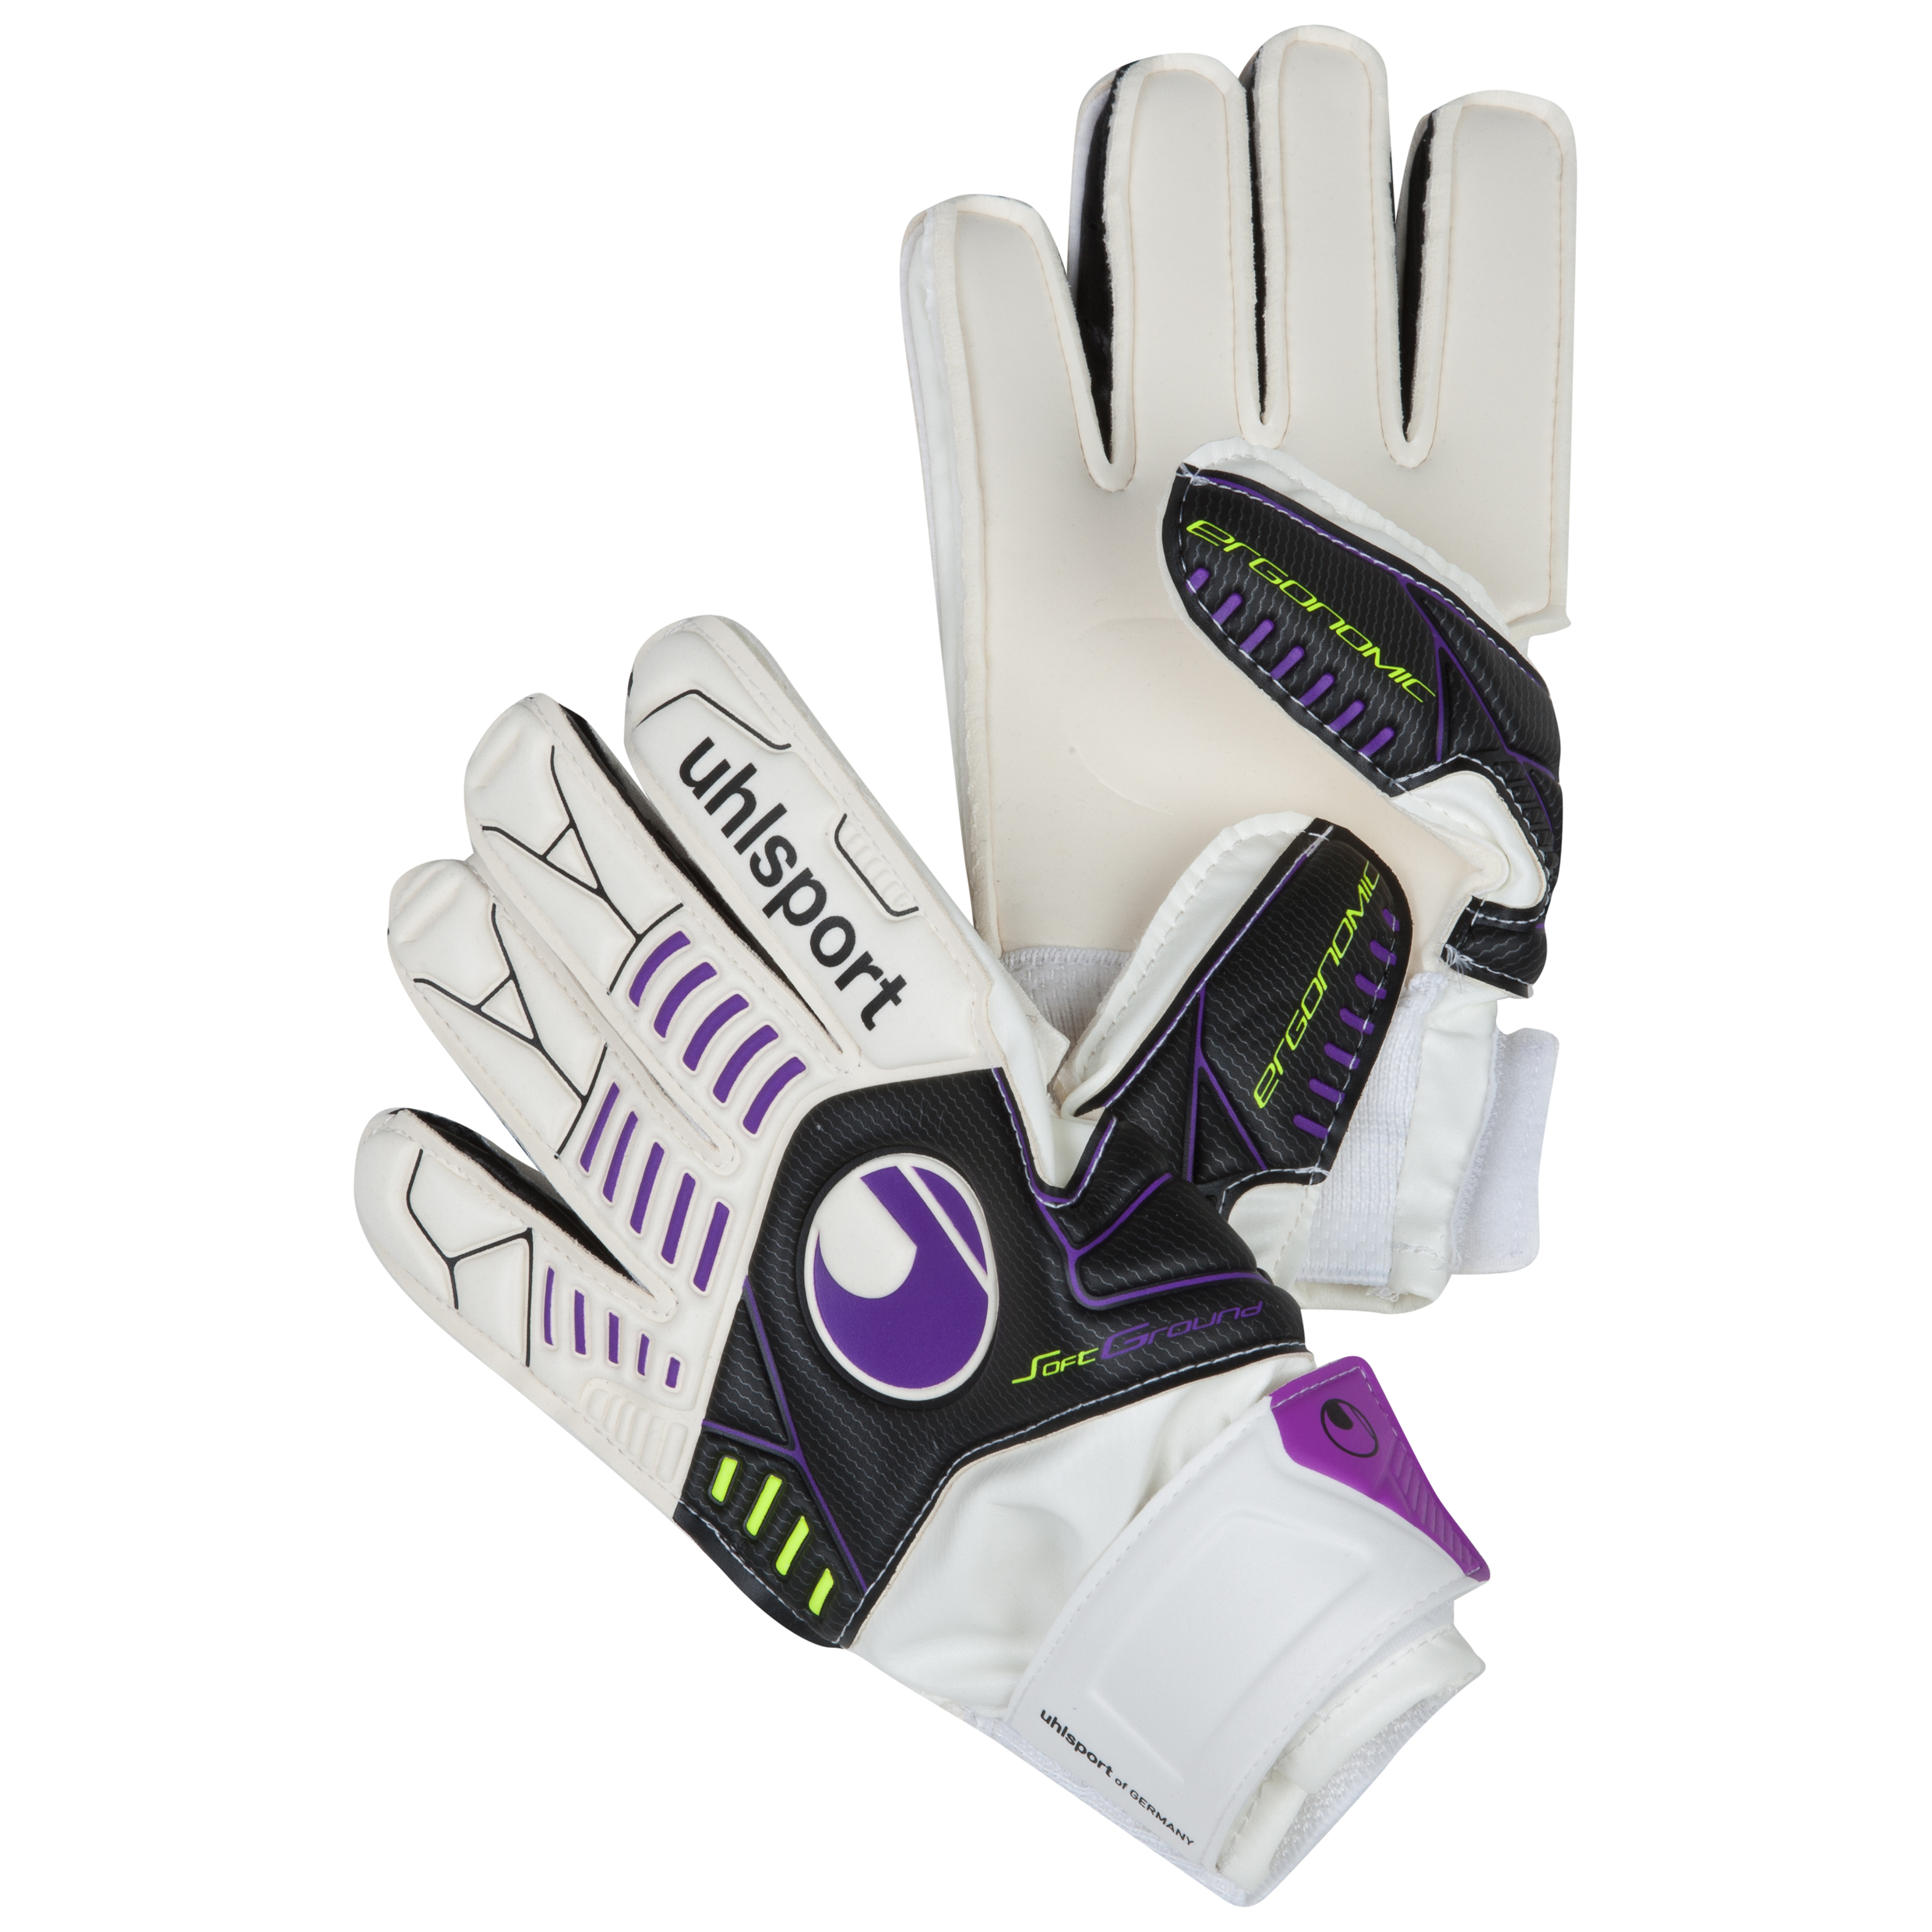 Uhlsport Ergonomic Soft Training Goalkeeper Gloves - White/Black/Purple - Kids